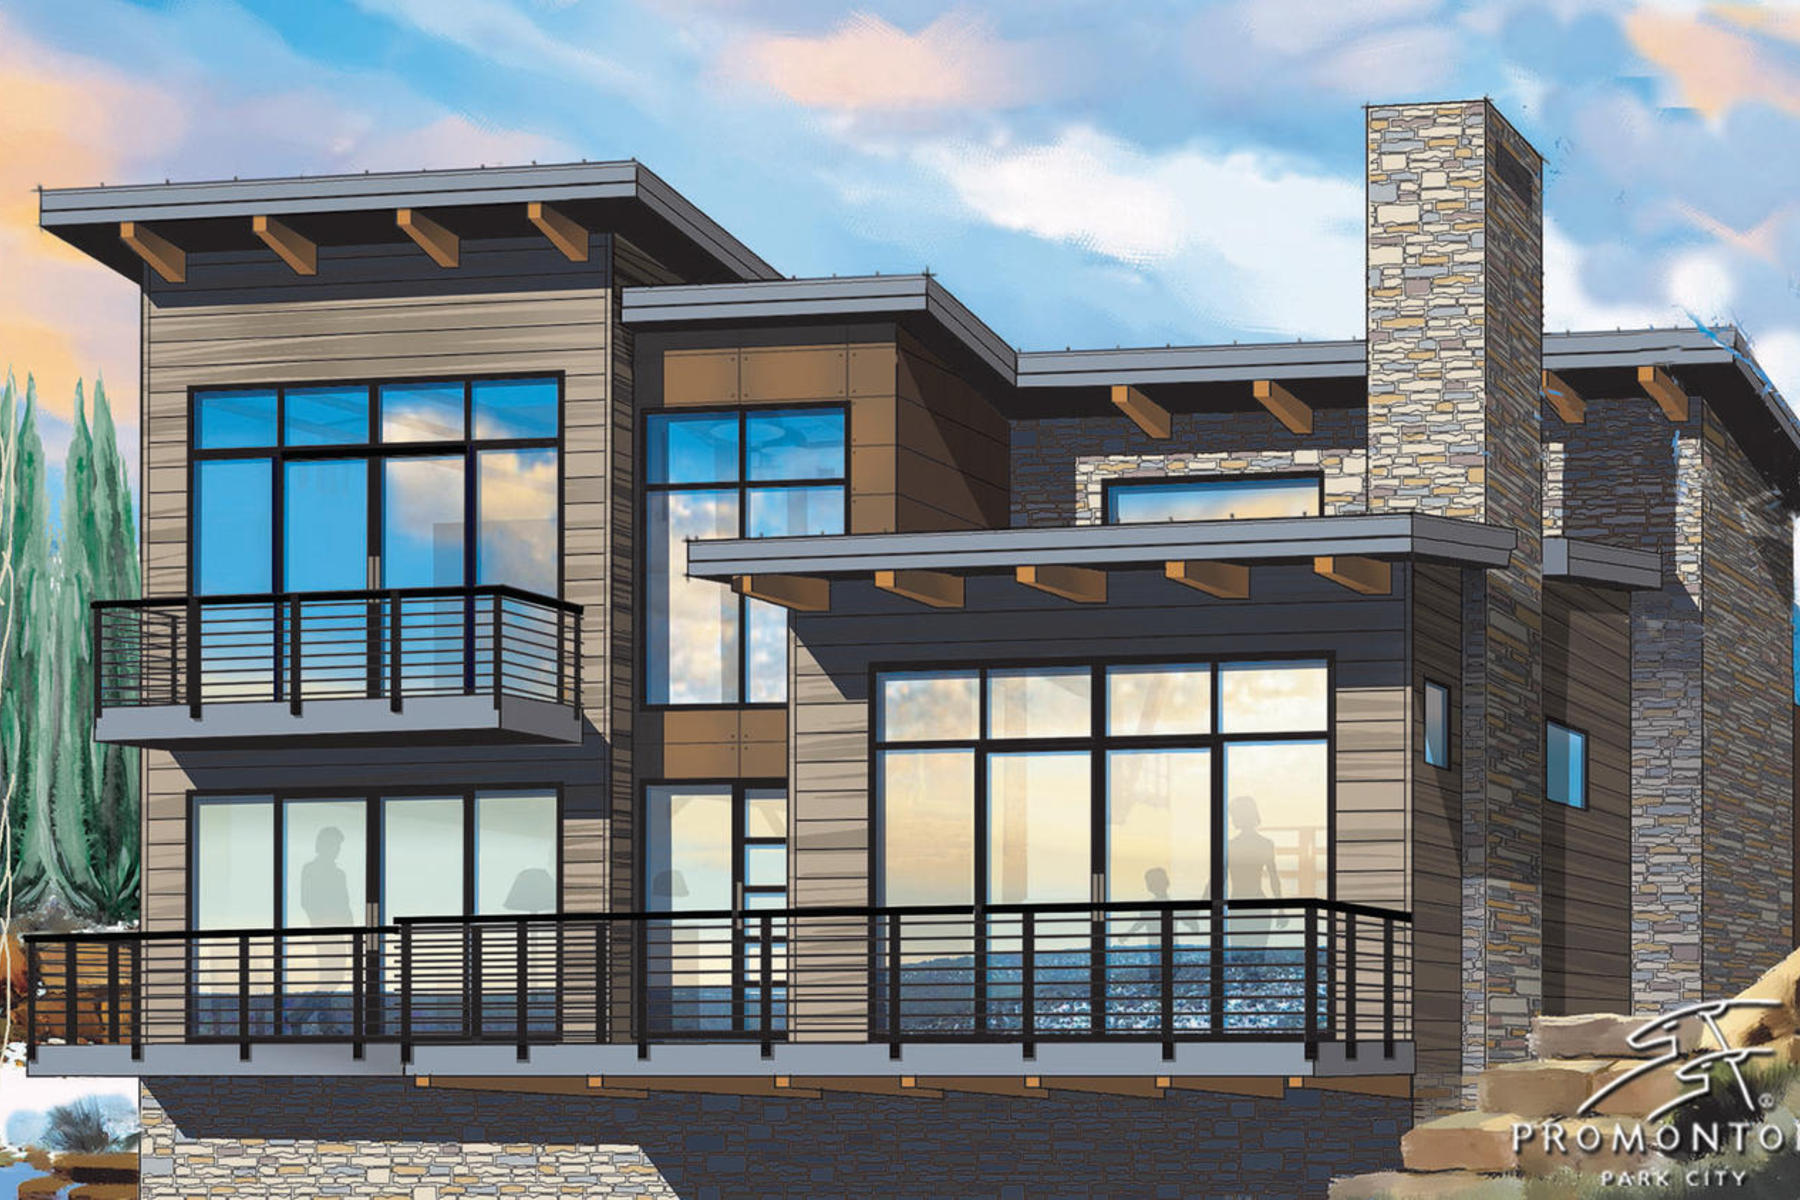 Moradia para Venda às New Nicklaus Golf Cabin Promontory 6482 Golden Bear Lp W Park City, Utah 84098 Estados Unidos